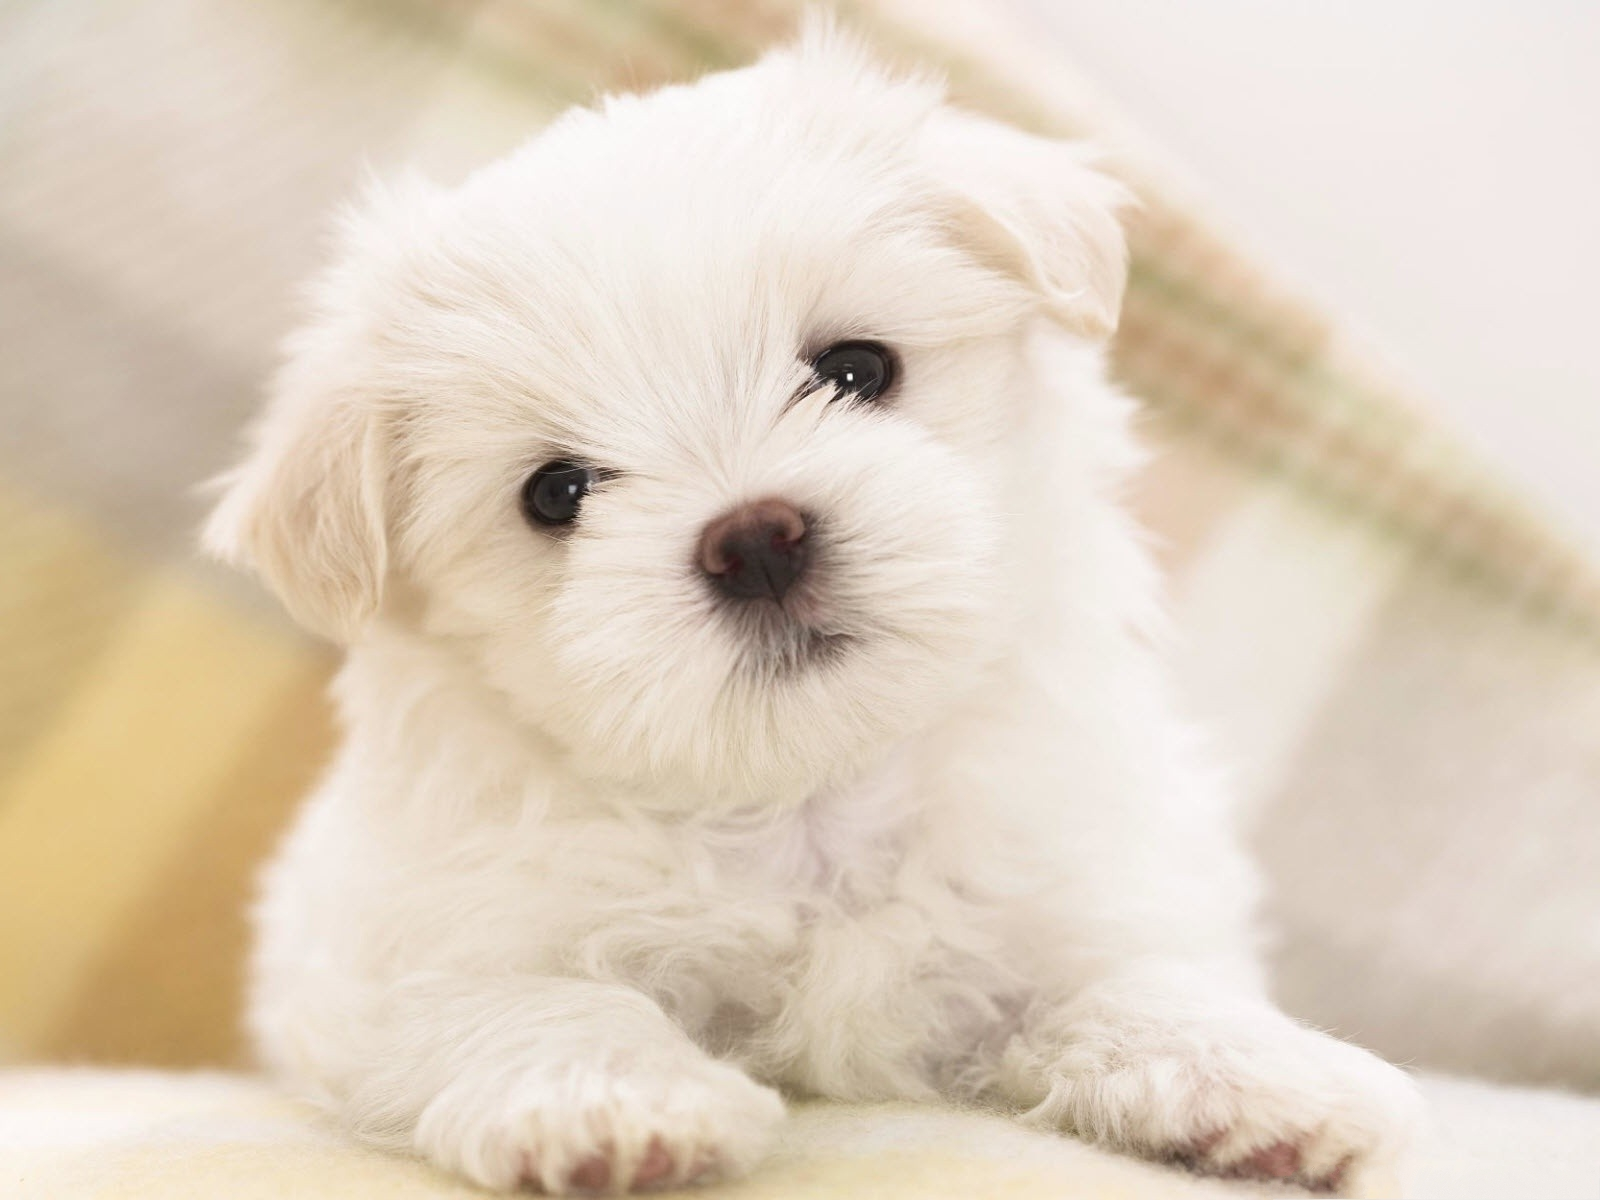 click to free download the wallpaper--Cute Dog Photo, White Fluffy Puppy Wrynecking, Black Shinning Eyes 1600X1200 free wallpaper download